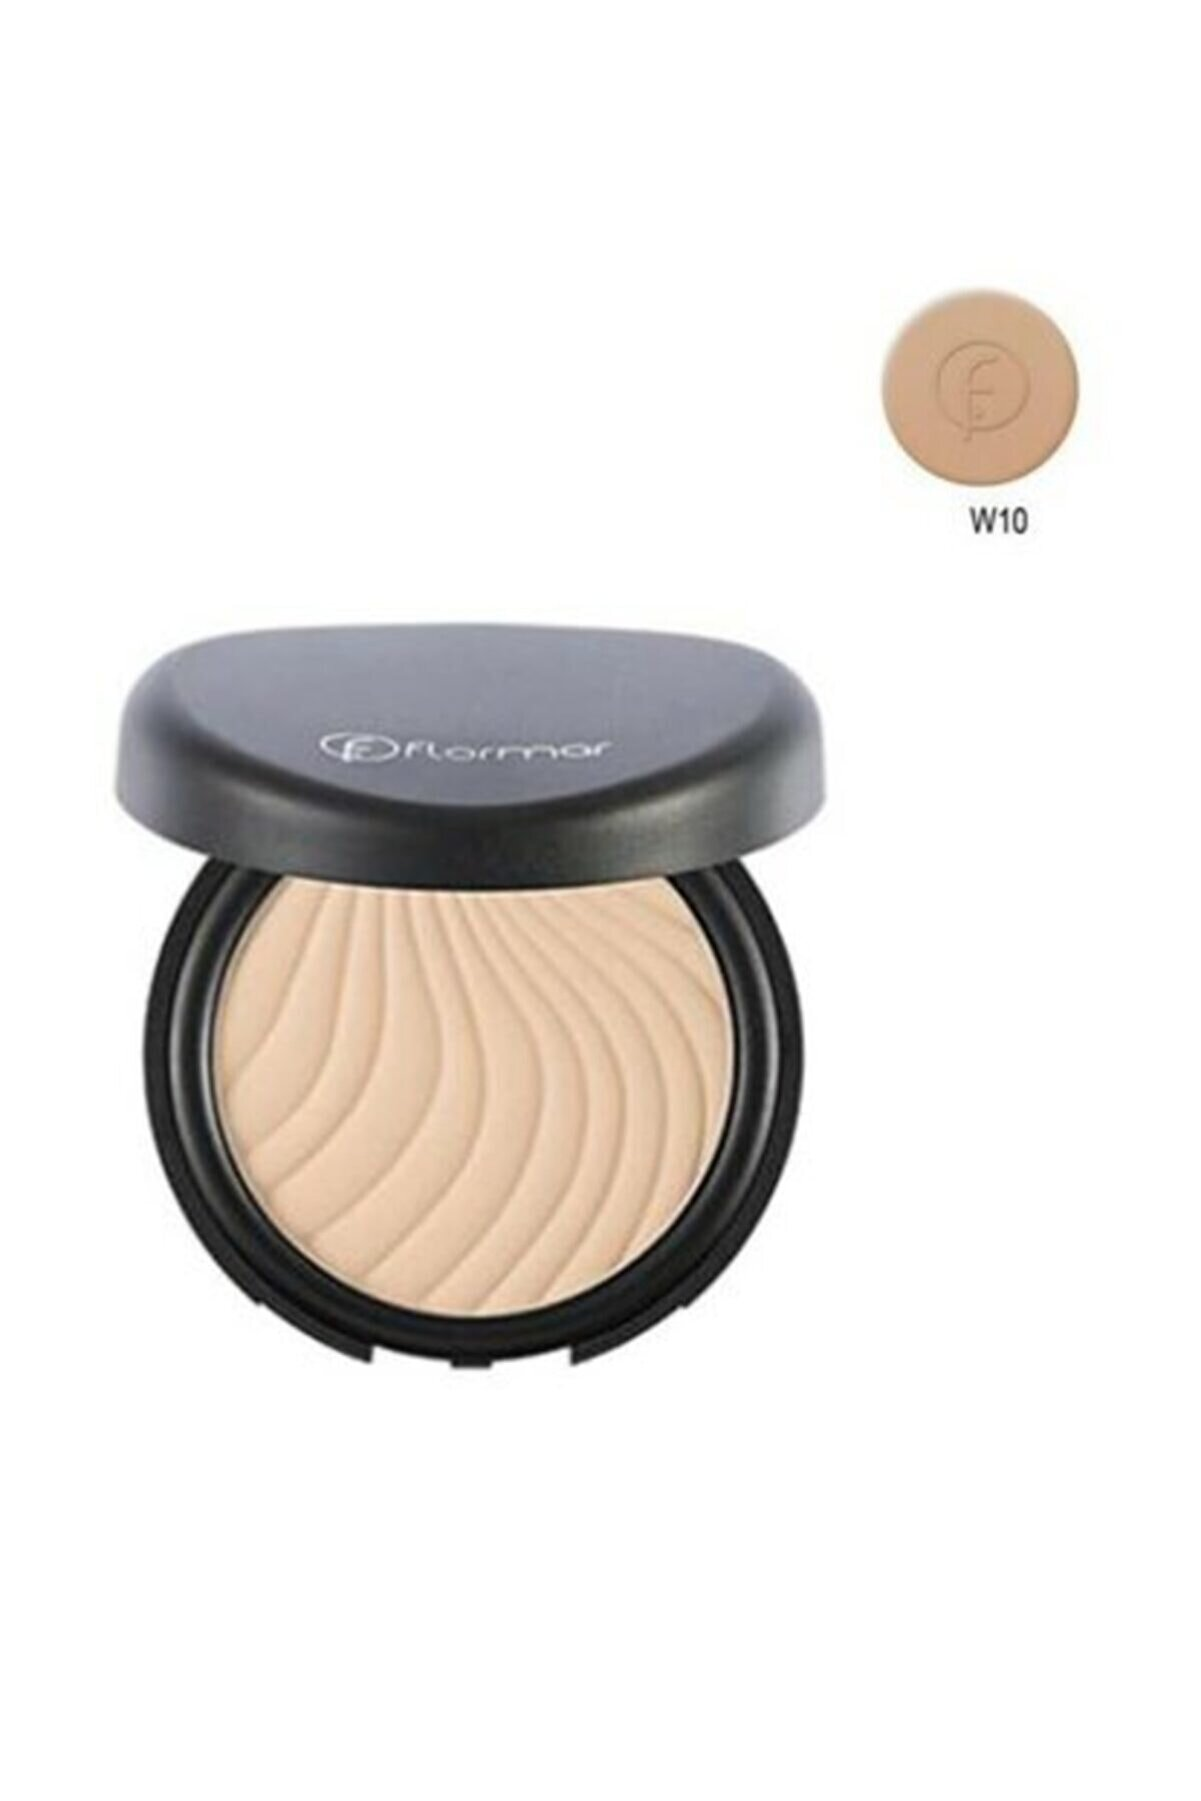 Flormar Pudra - Wet & Dry Compact Powder Apricot W10 8690604134274